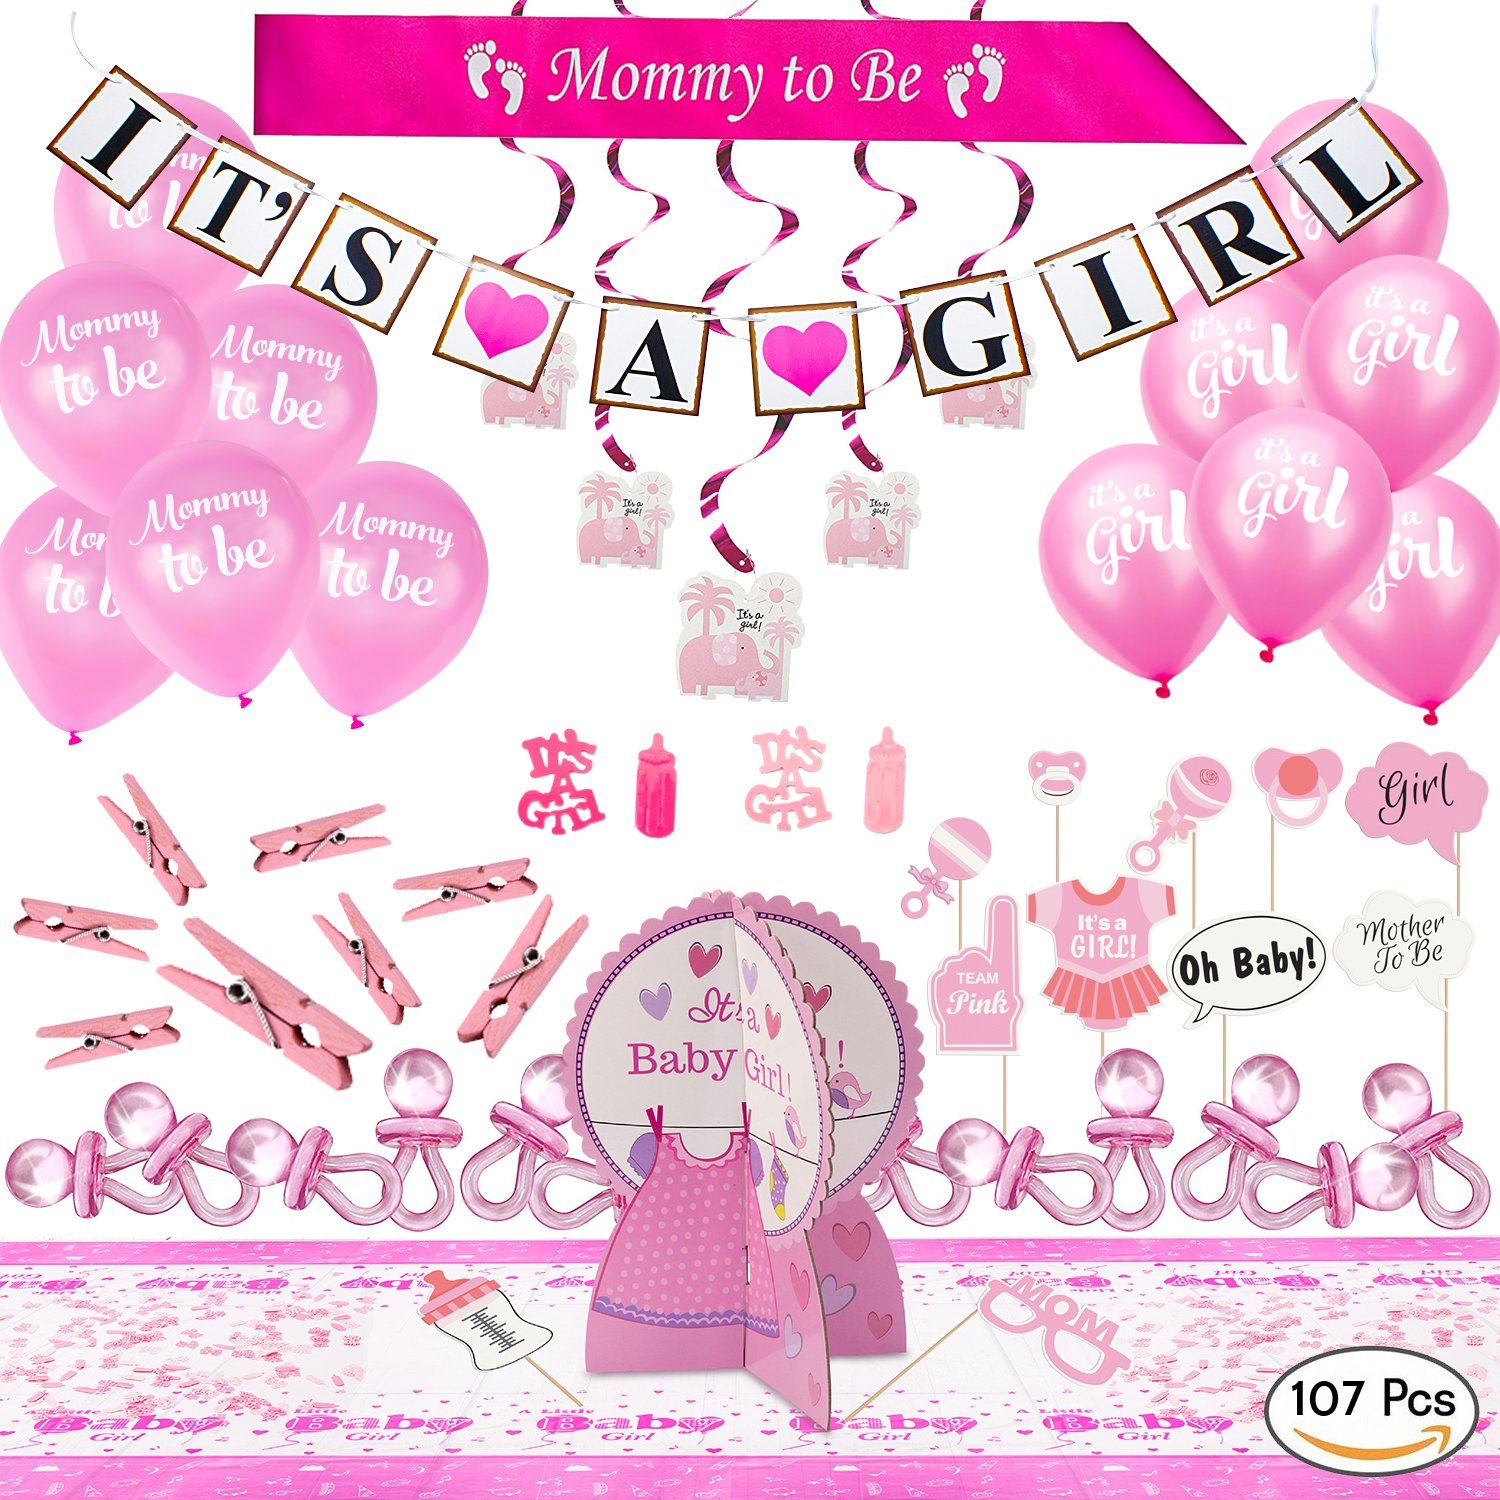 ARTIT Baby Shower Girl Pink Party Decoration Set BIGGEST 107 PCS Bundle Kit Favors - Banner Balloons Mommy to Be Sash Elephant Swirls Big Pacifiers Centerpiece Tablecloth Photo Booth Props Clothespins